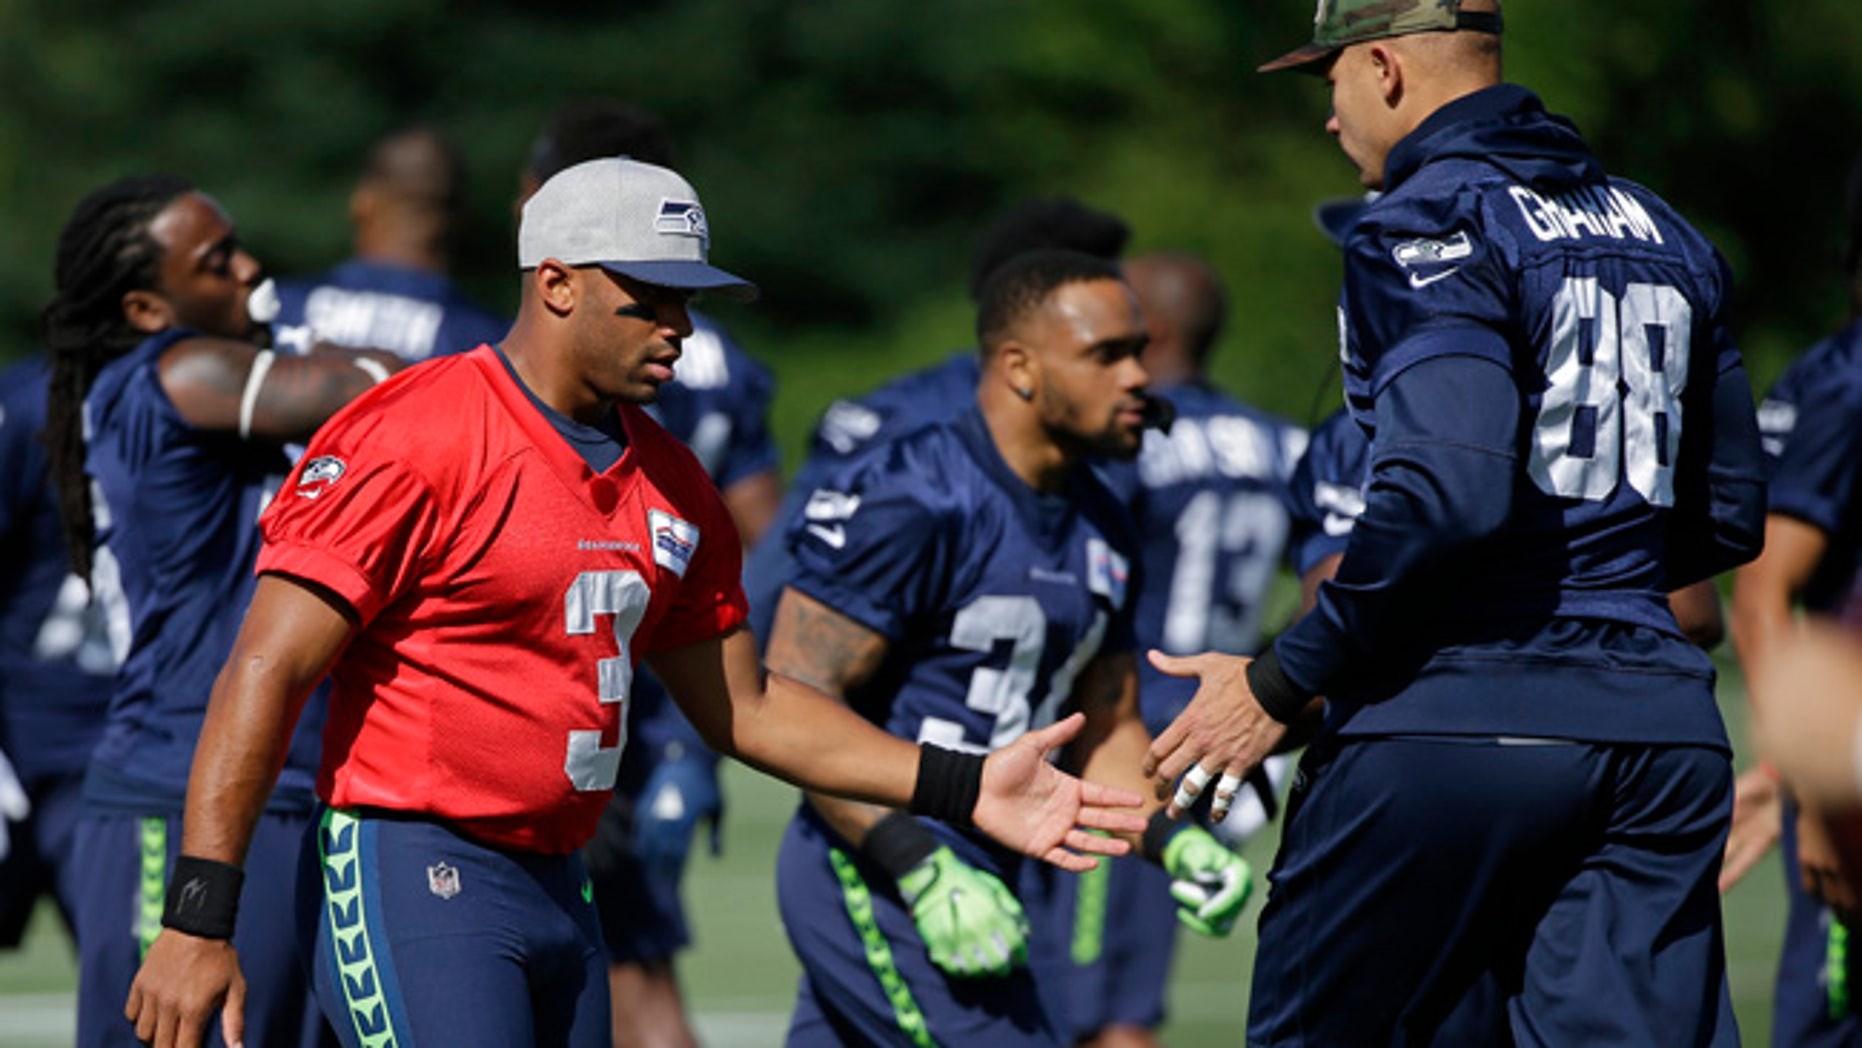 Seattle Seahawks quarterback Russell Wilson, left, greets tight end Jimmy Graham (88) at NFL football training camp, Sunday, July 30, 2017, in Renton, Wash. (AP Photo/Ted S. Warren)